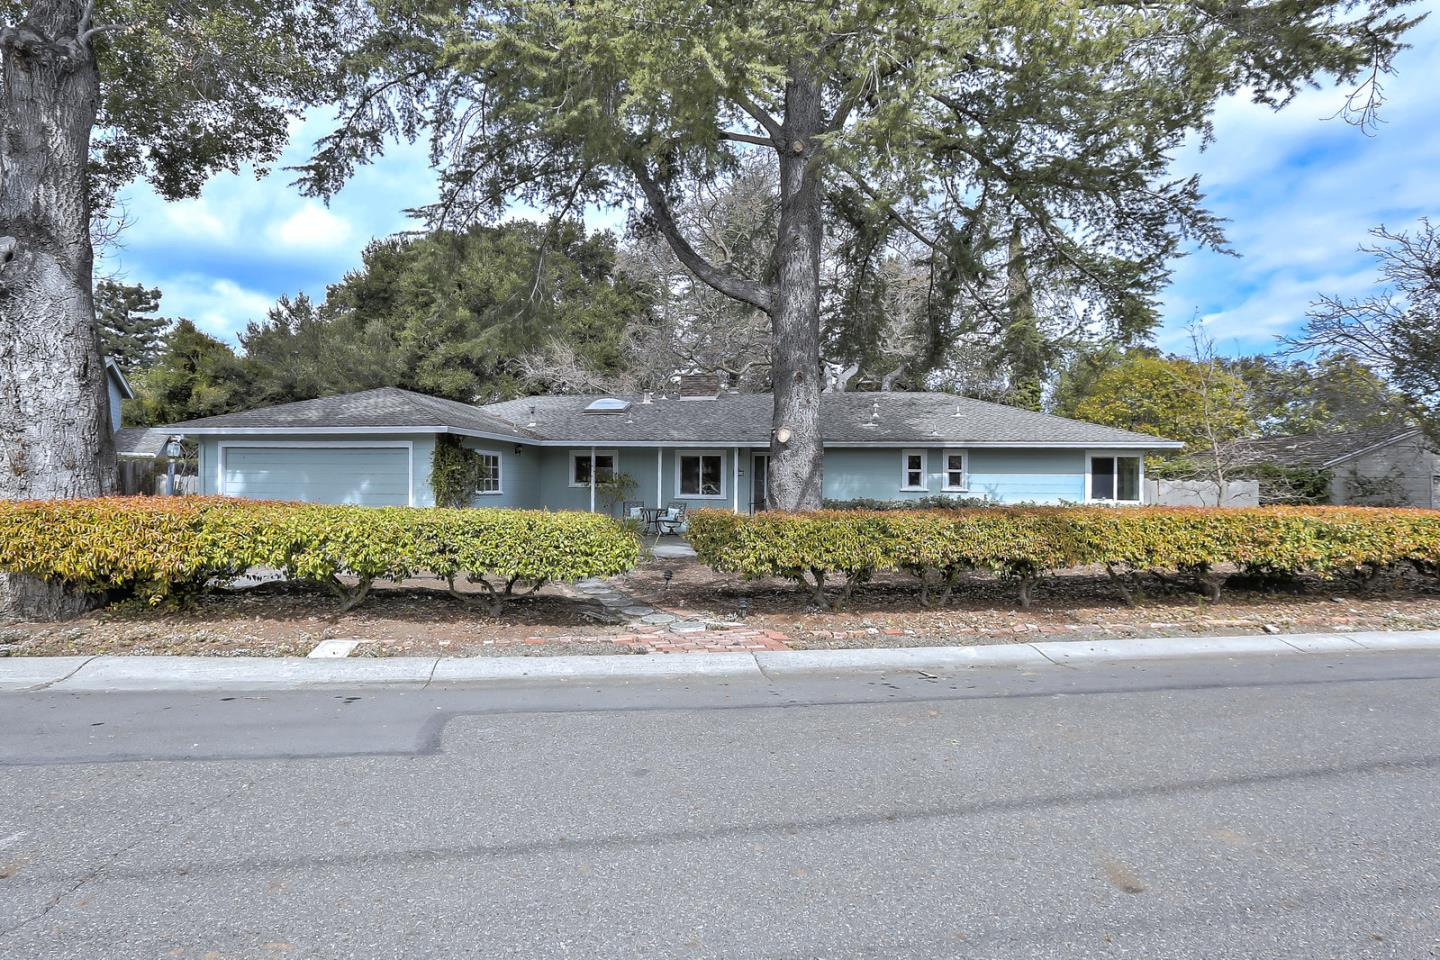 Single Family Home for Sale at 861 Arroyo Road 861 Arroyo Road Los Altos, California 94024 United States